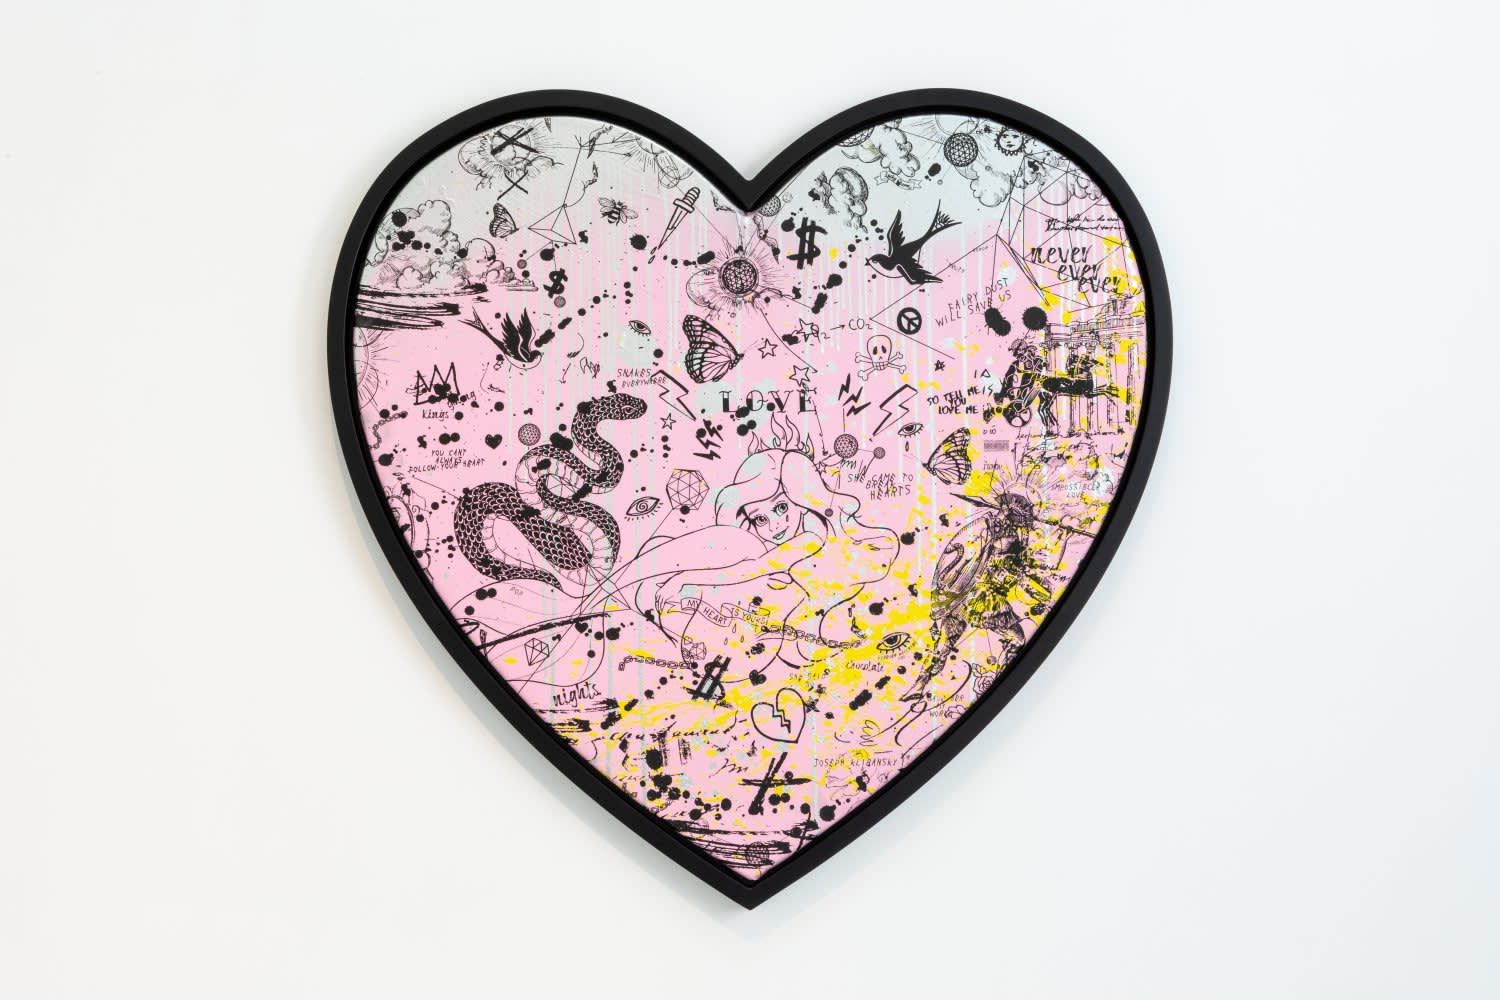 Joseph Klibansky She Came To Break Hearts - Pink/Black, Yellow Splash and Silver Drips Silkscreen and Acrylic on Canvas